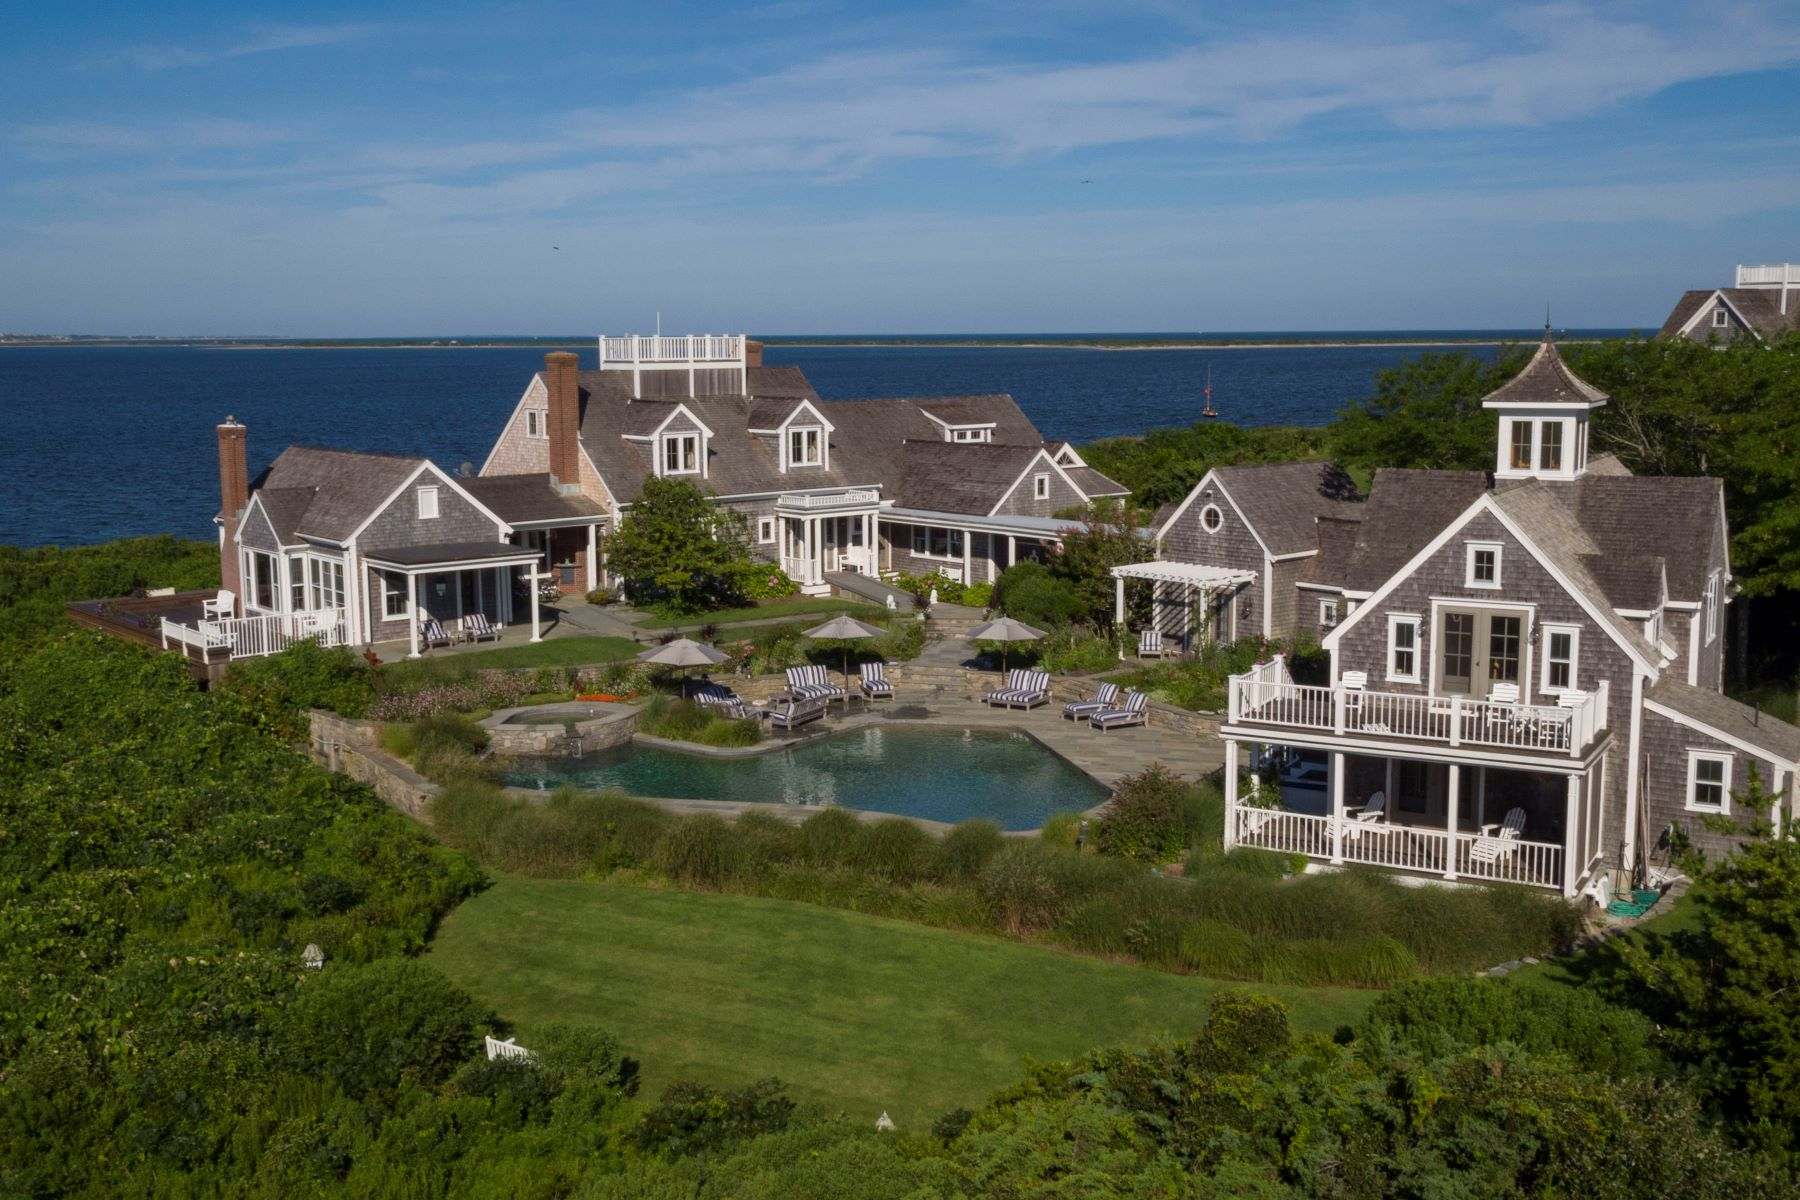 Casa Unifamiliar por un Venta en Entirely Unique Waterfront Estate 72 Pocomo Road 78 Pocomo Road Nantucket, Massachusetts, 02554 Estados Unidos